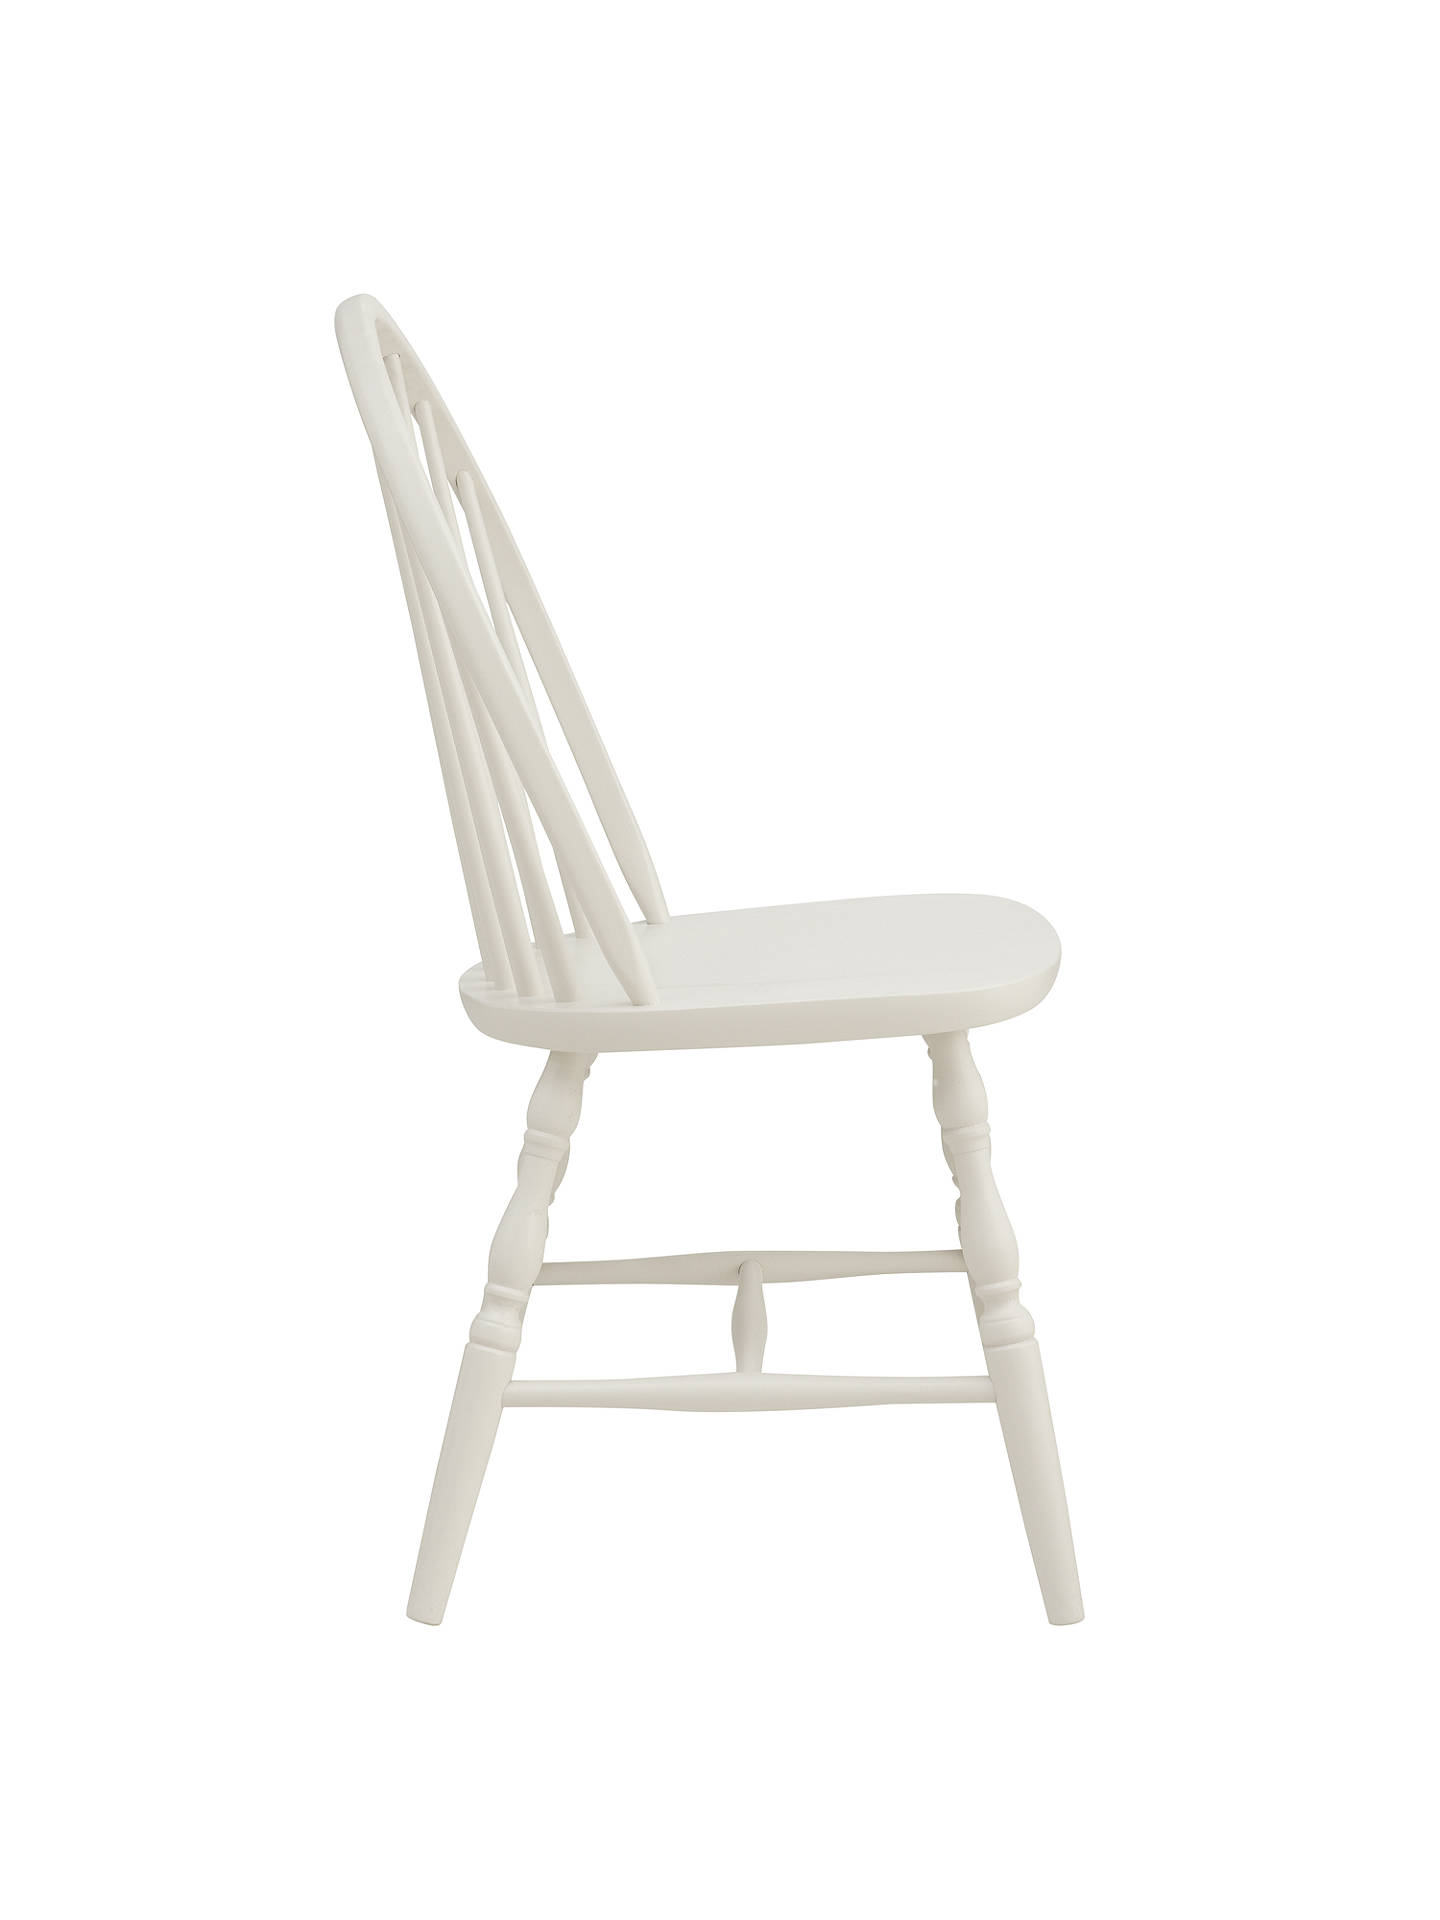 Buy John Lewis Croft Collection Marple Dining Chair, Cream Online at johnlewis.com